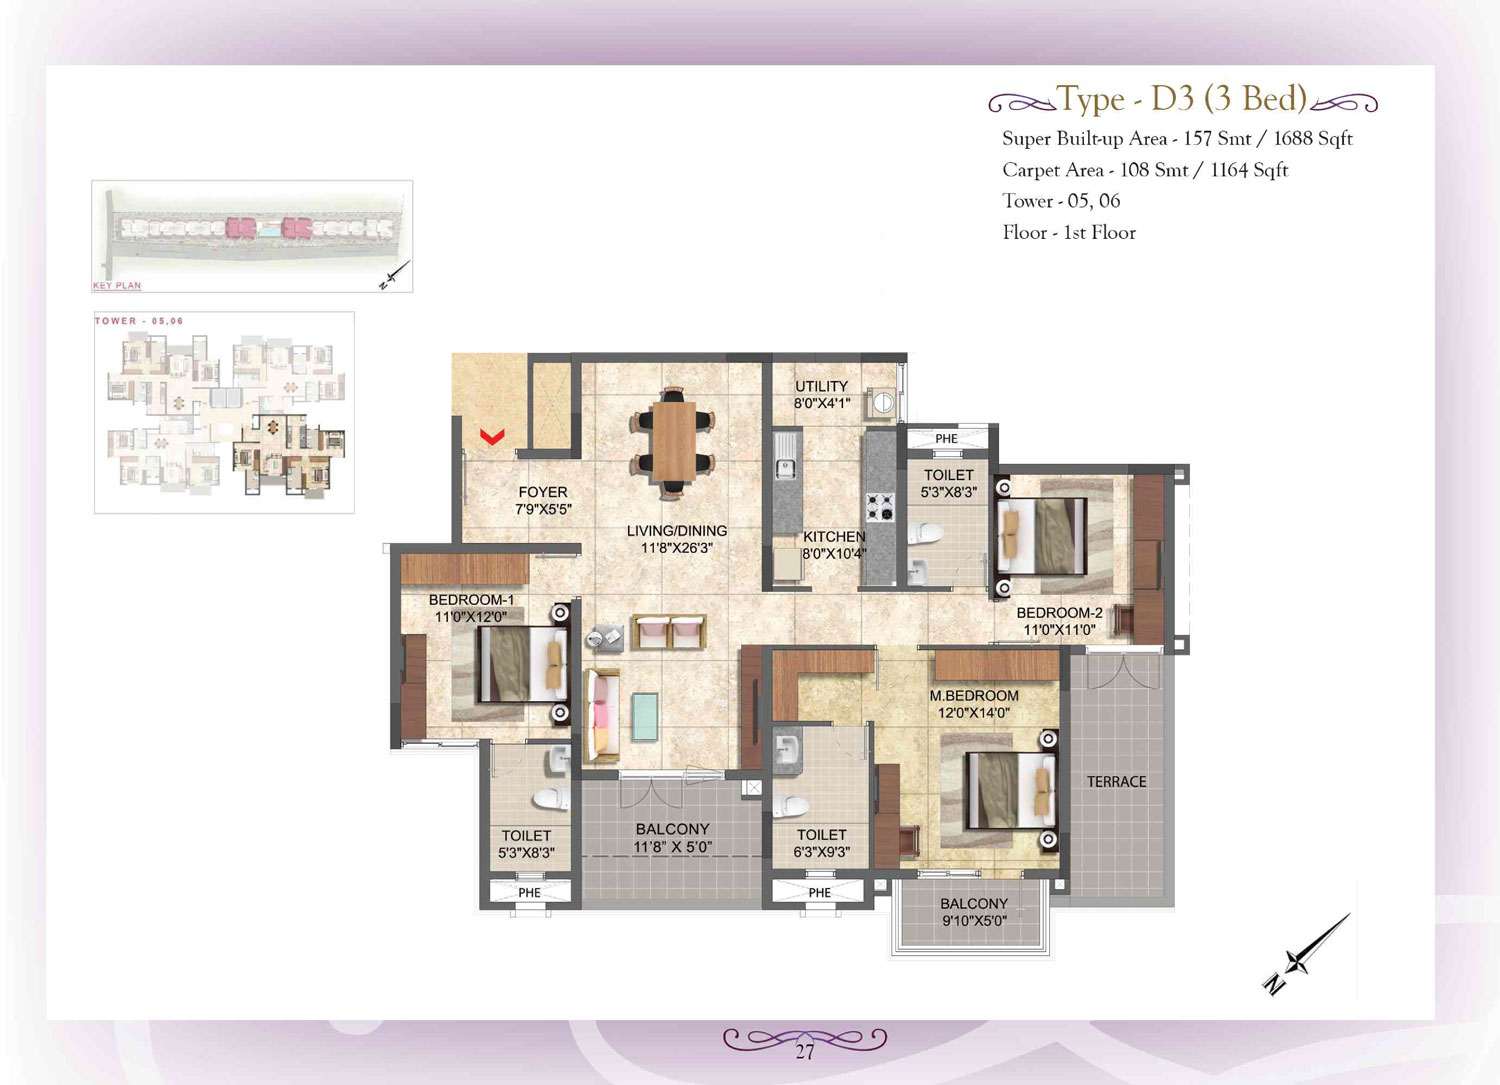 Type D3 - 3 Bed - 1688 Sq Ft